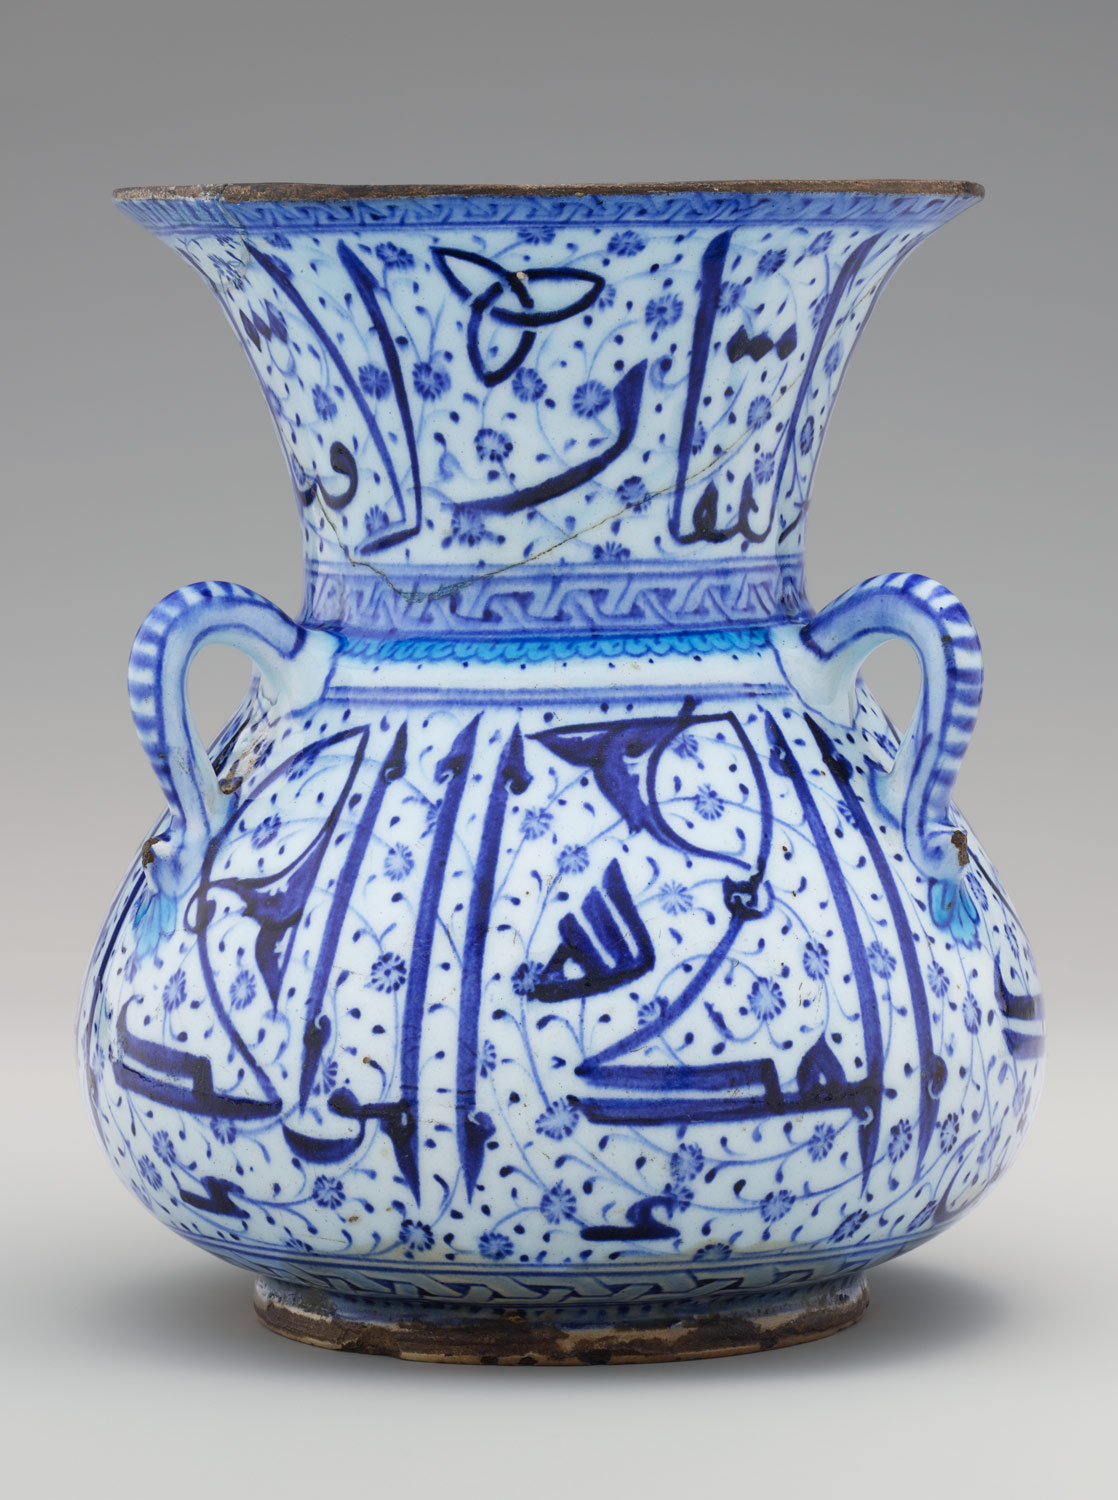 Ceramic Vessel in the Shape of a Mosque Lamp